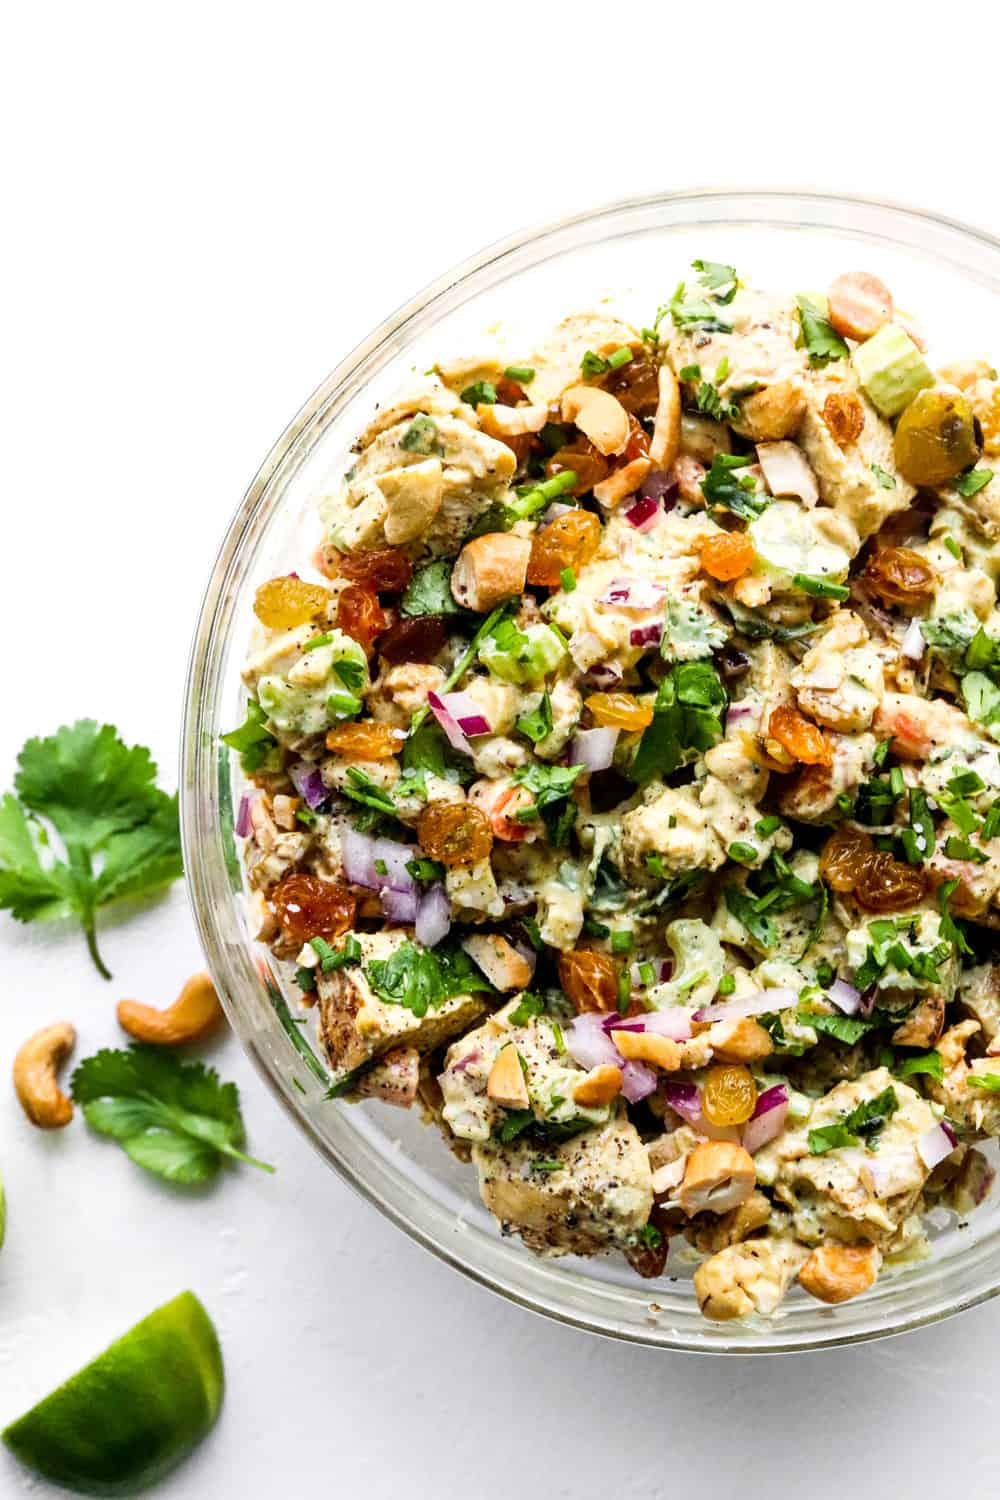 Bowl of gluten free curry chicken salad with purple onion and cilantro in it and limes and cashews next to it.